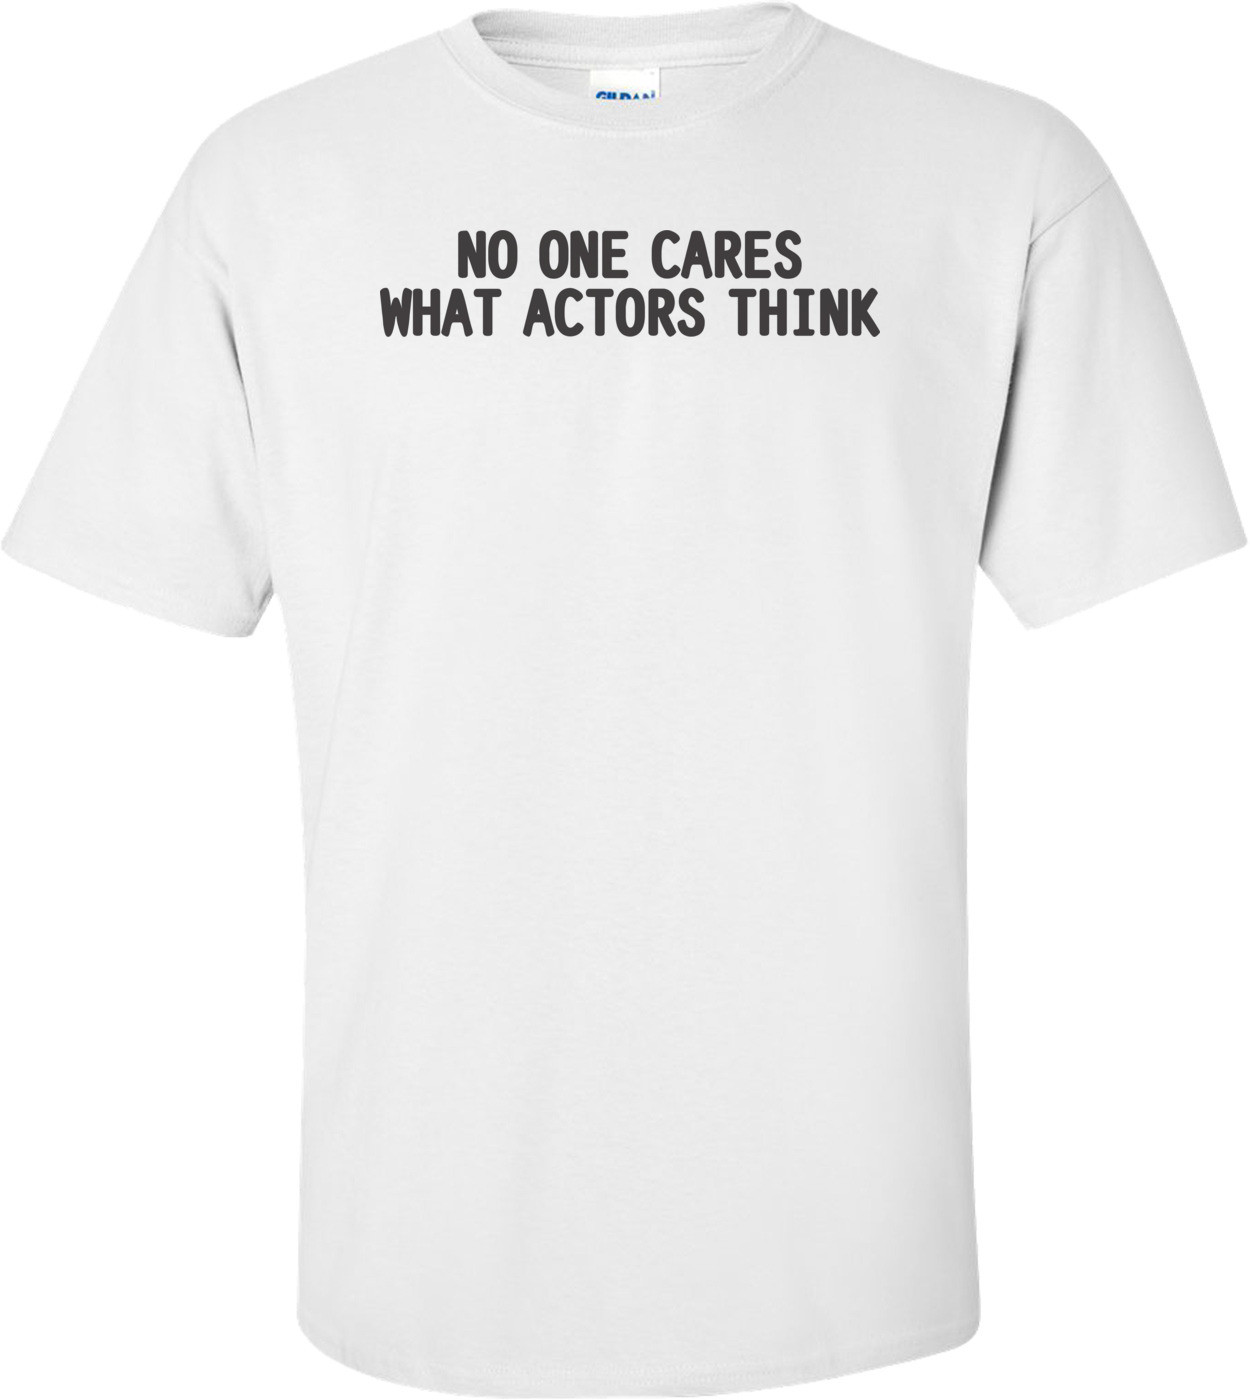 No One Cares What Actors Think T-shirt